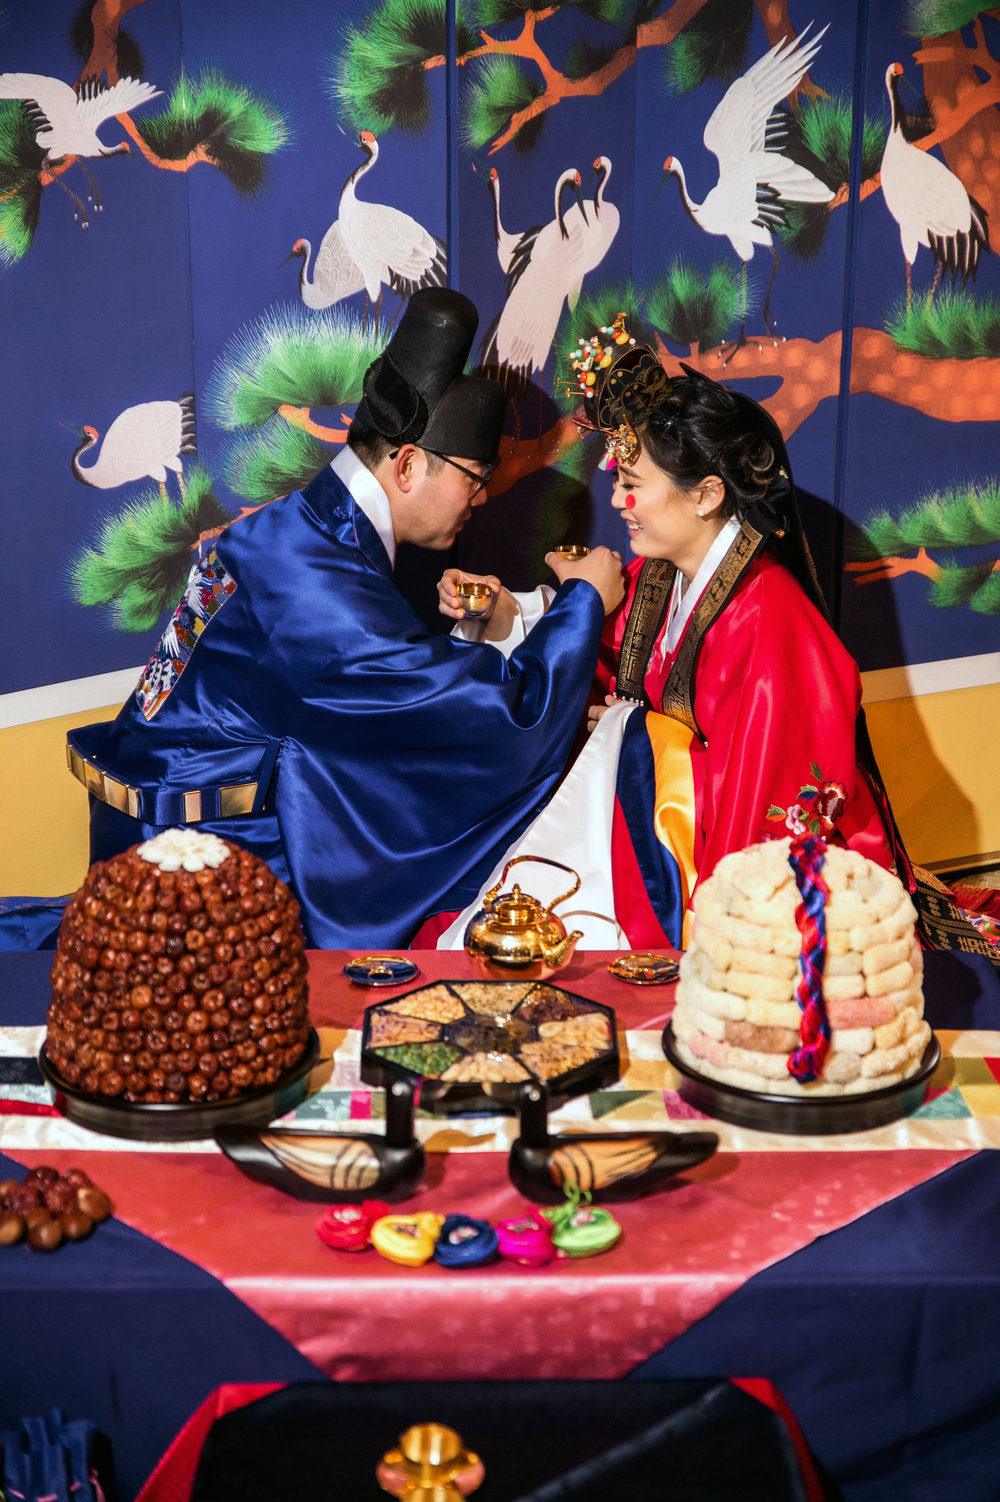 Traditional Korean tea ceremony during sustainable wedding reception of bride and groom celebrating a momentus occasion while wearing native garb